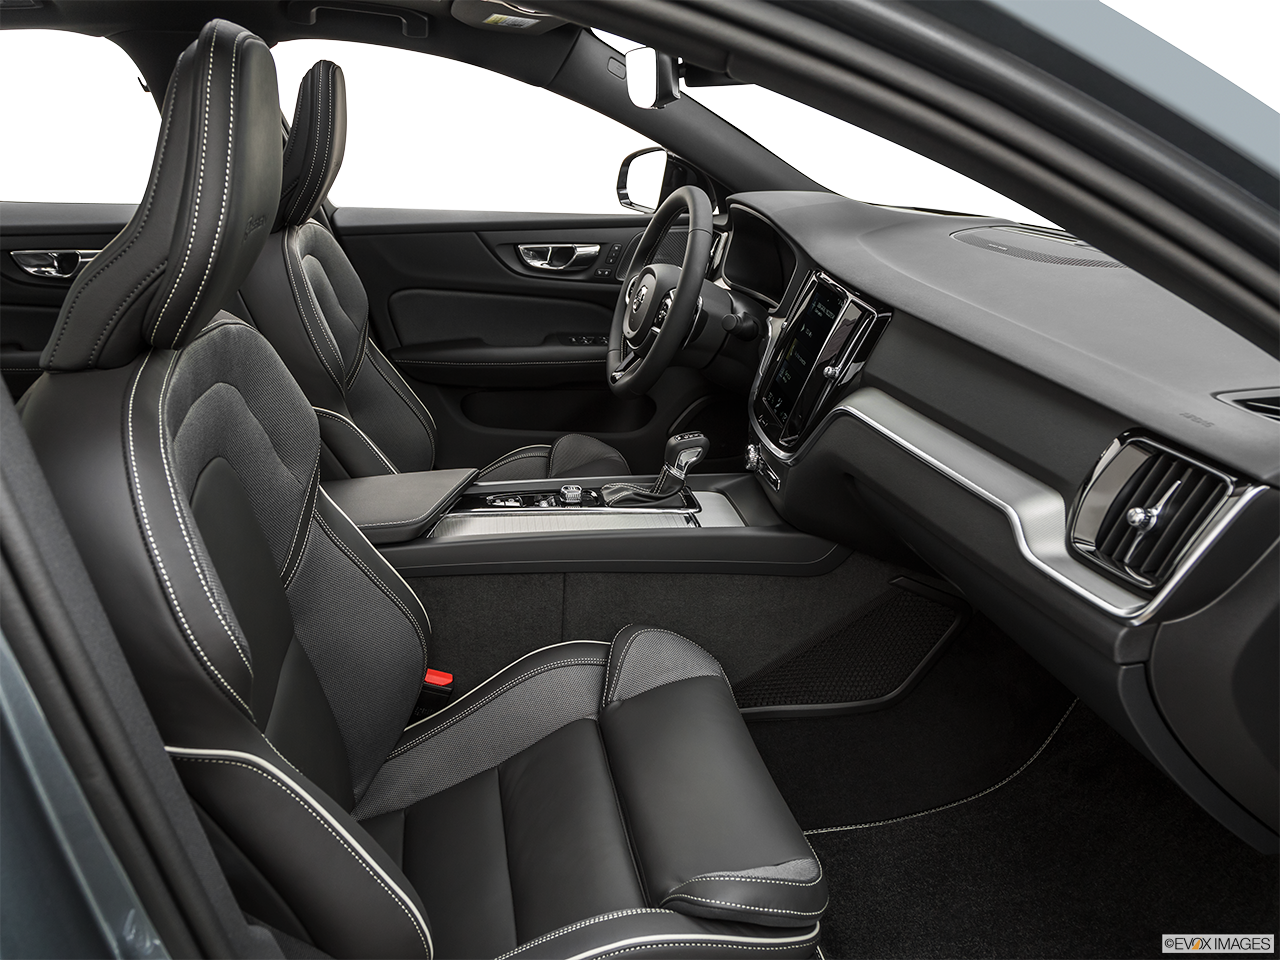 Interior view of the Volvo S60 PHEV